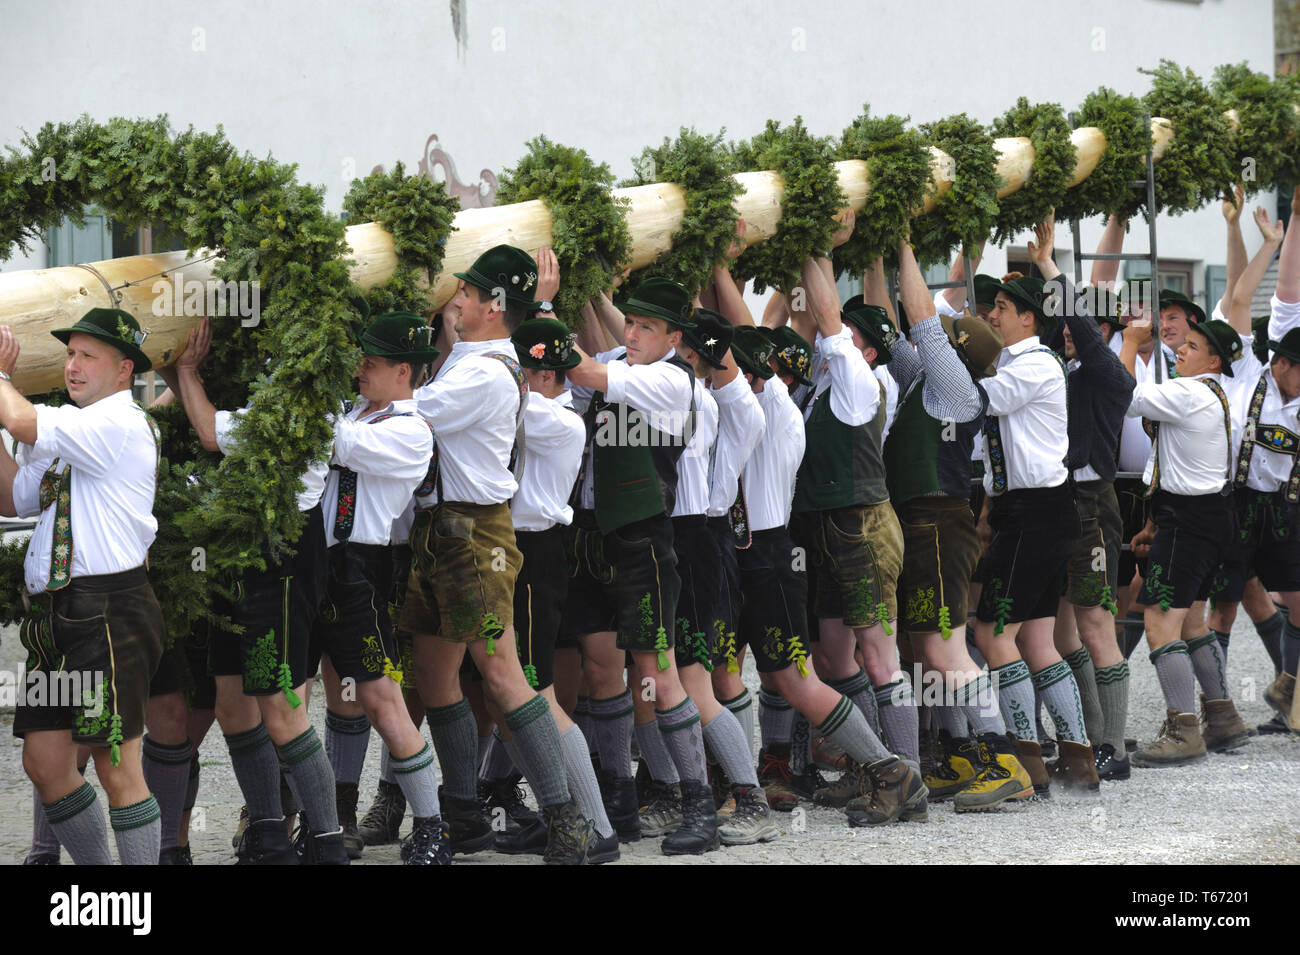 Setting up the Maipole, a bavarian tradition, Germany - Stock Image